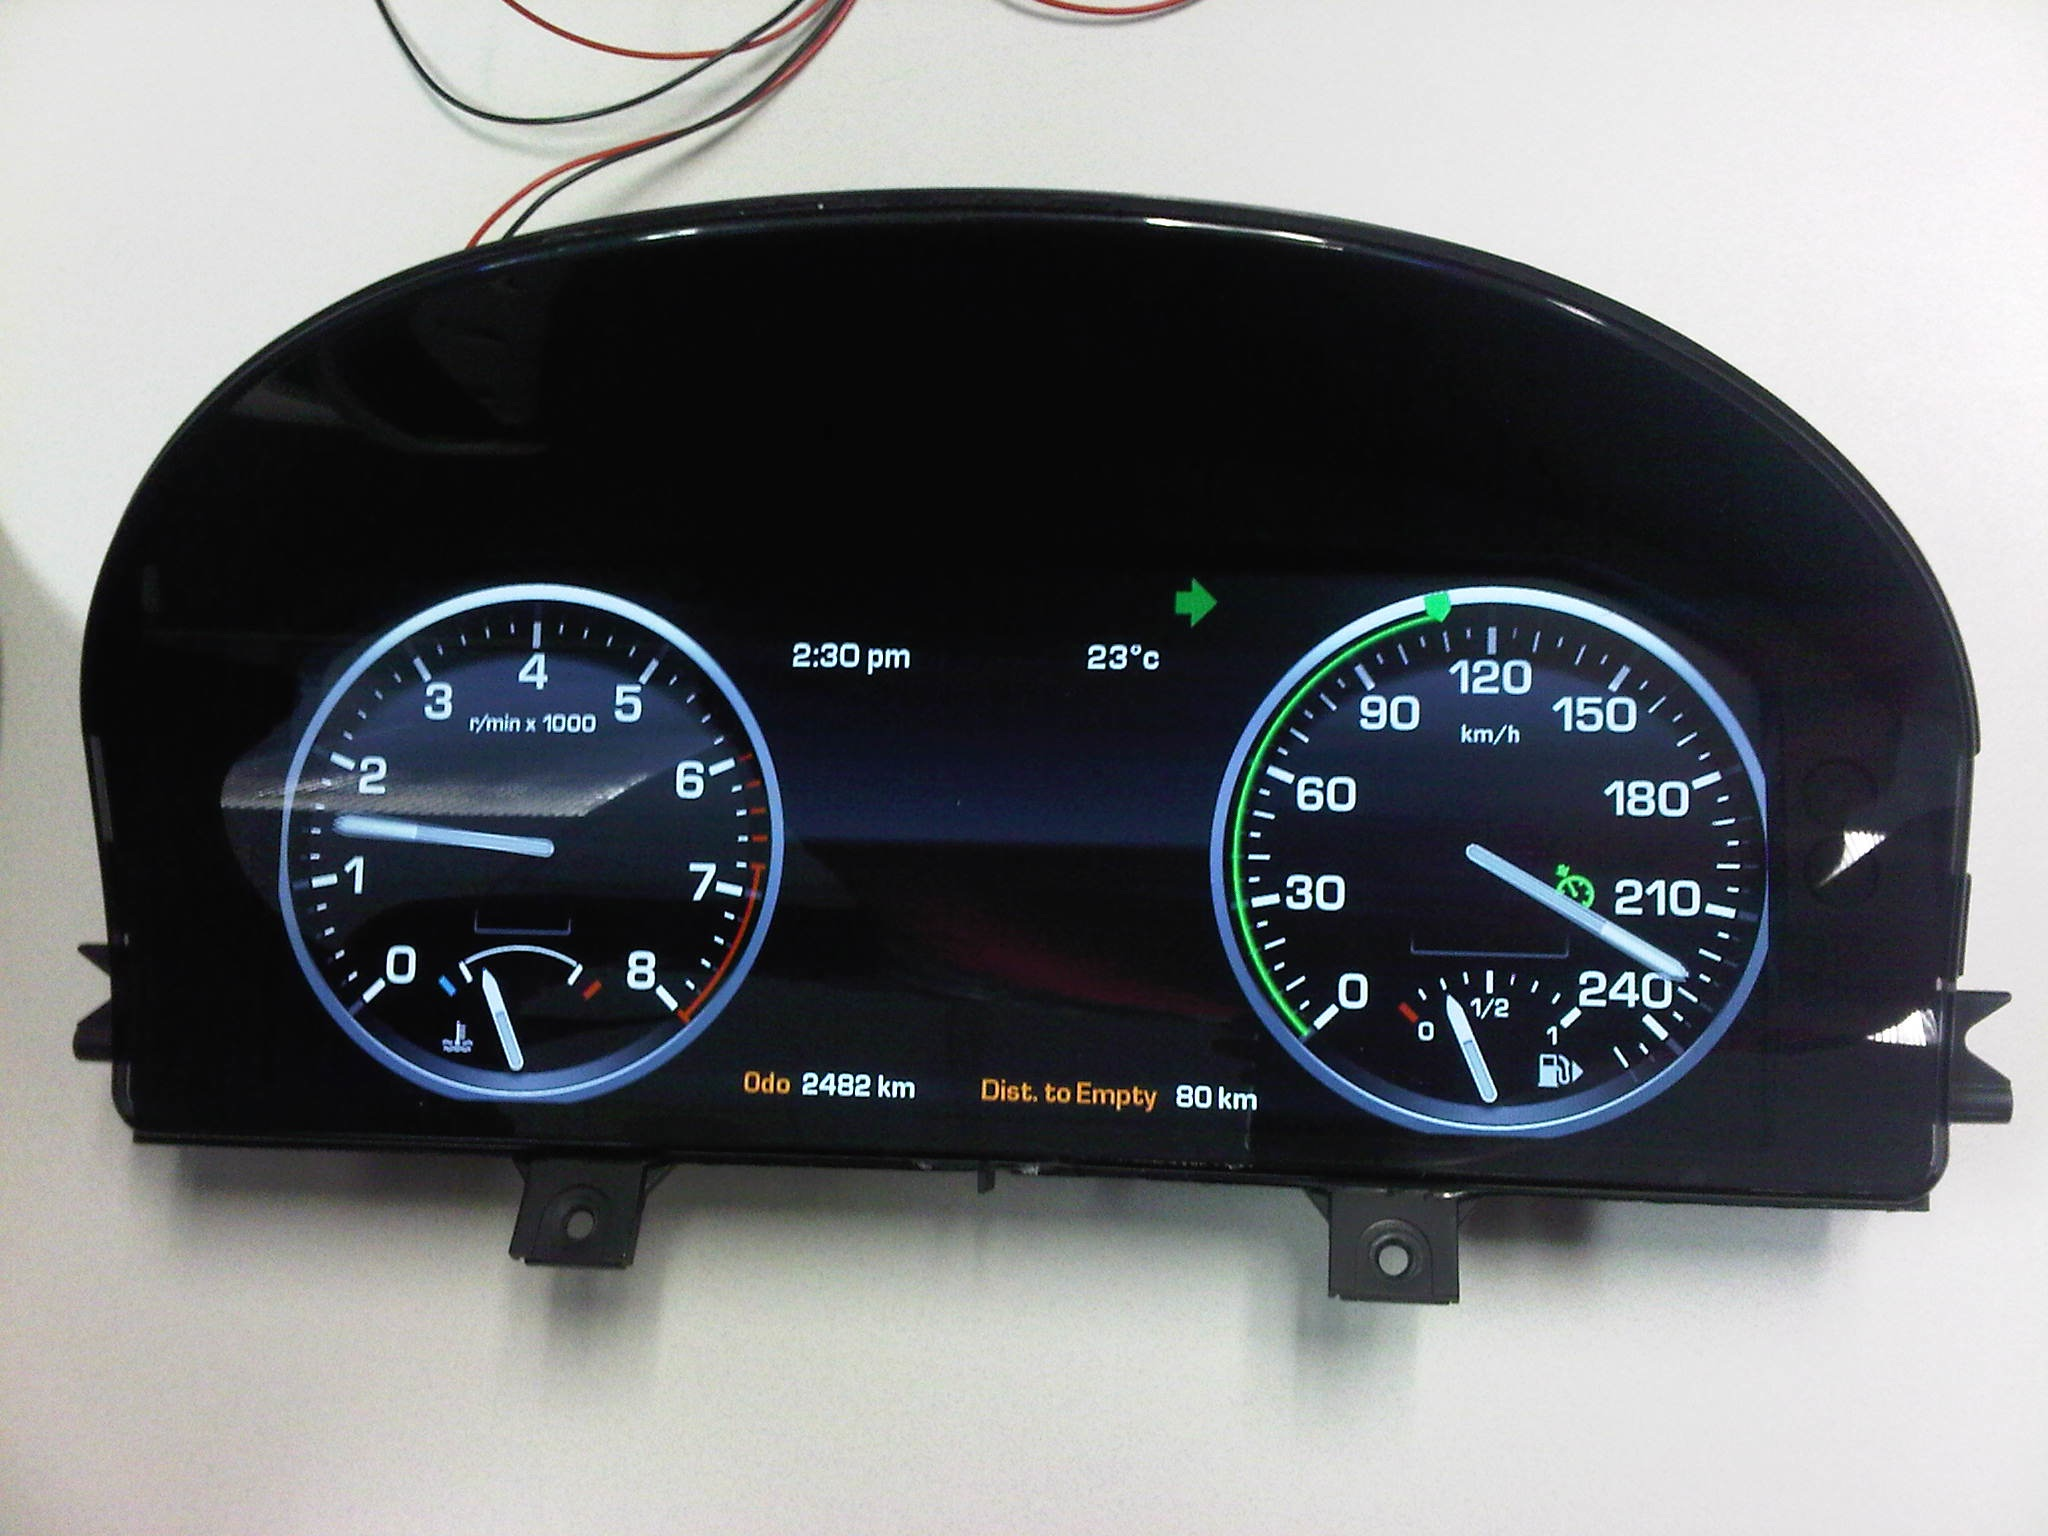 Electronic Gauge Cluster : Production digital instrument clusters tertiary matters